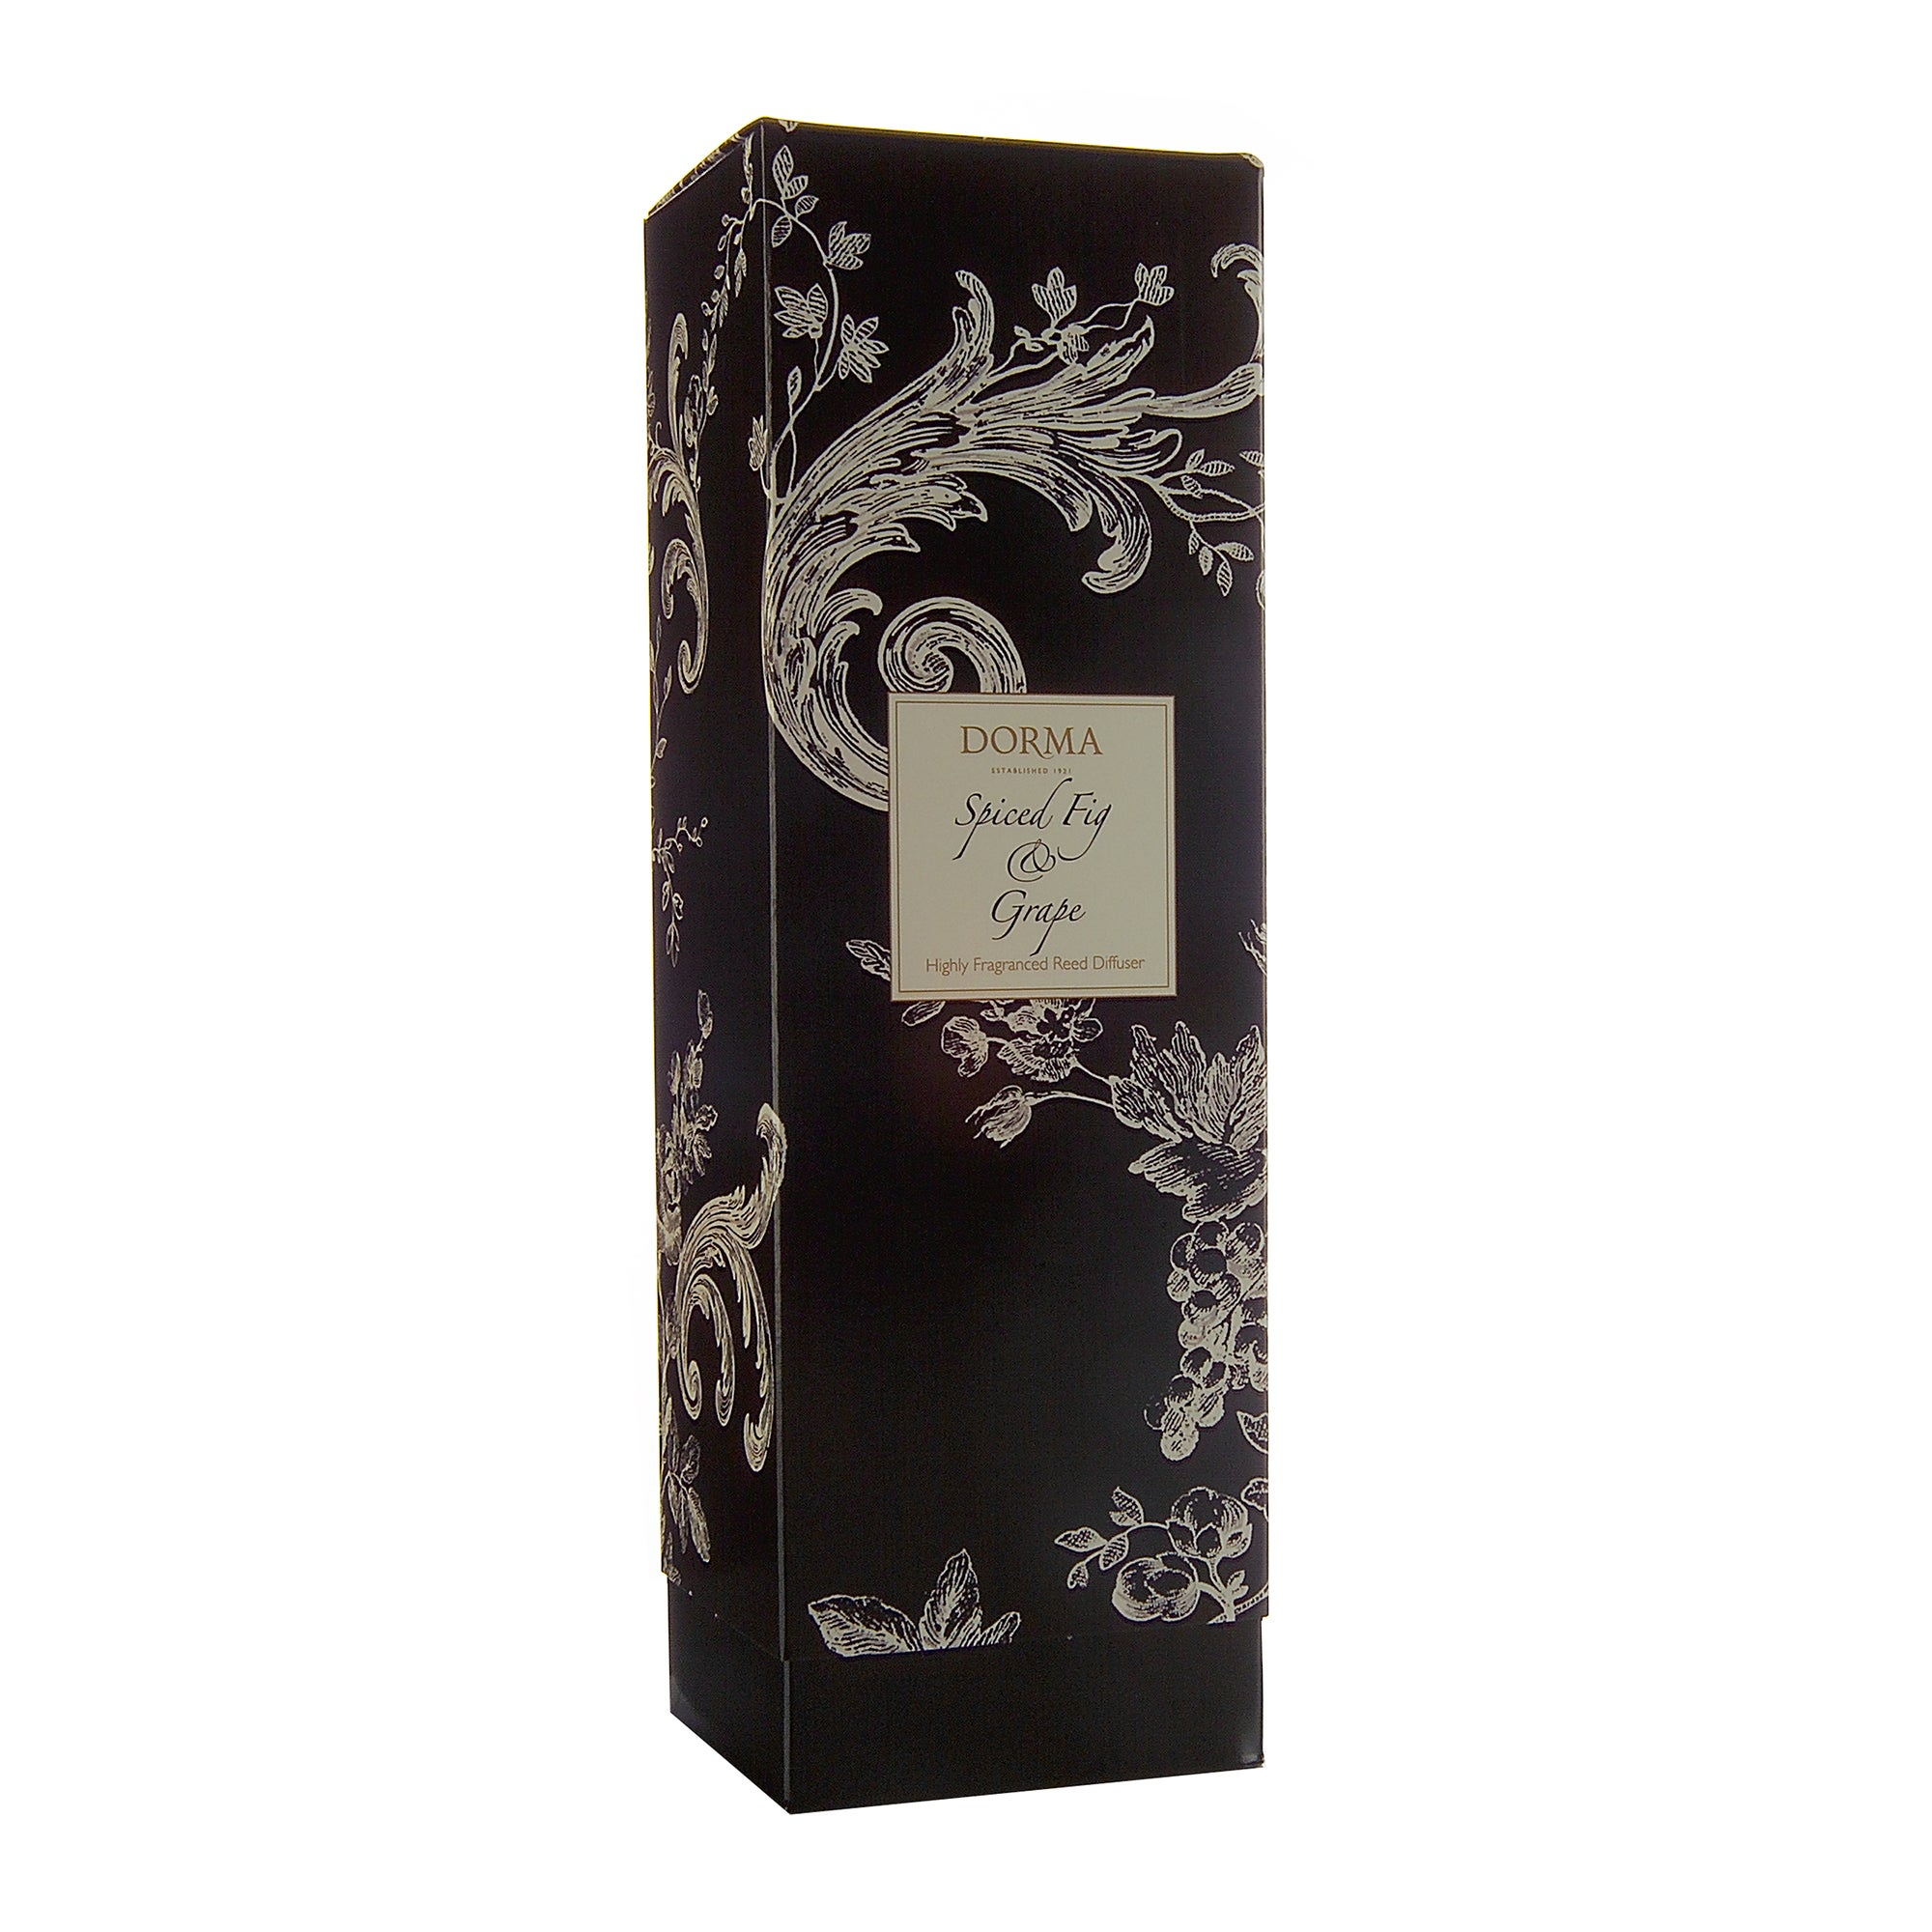 Dorma Spiced Fig and Grape 200ml Reed Diffuser